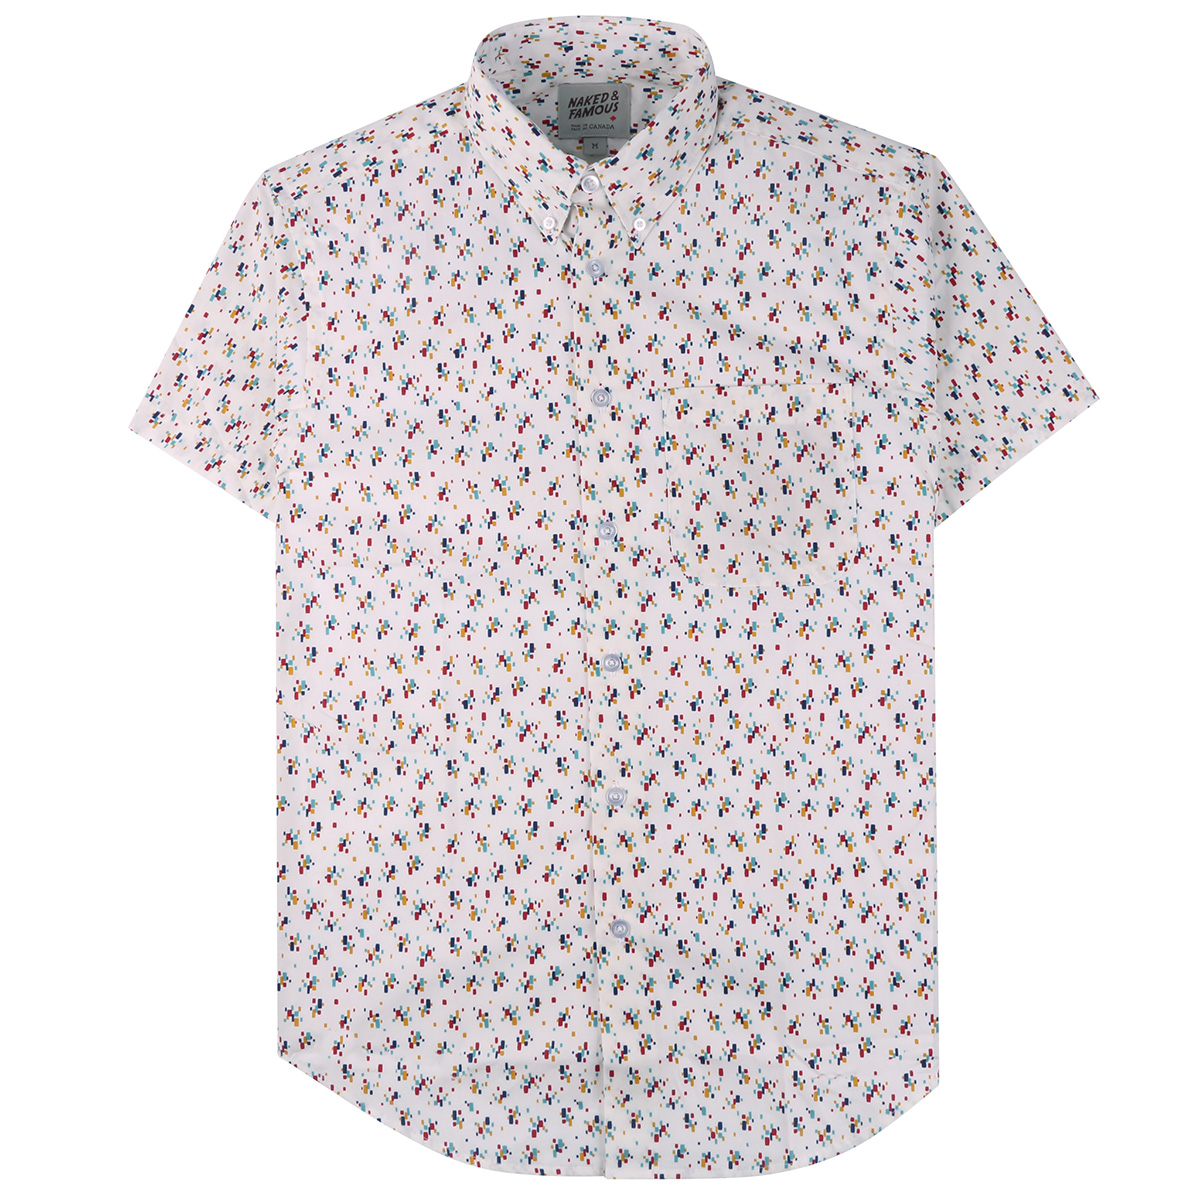 VINTAGE MOD PRINT - WHITE - Short Sleeve Easy Shirt